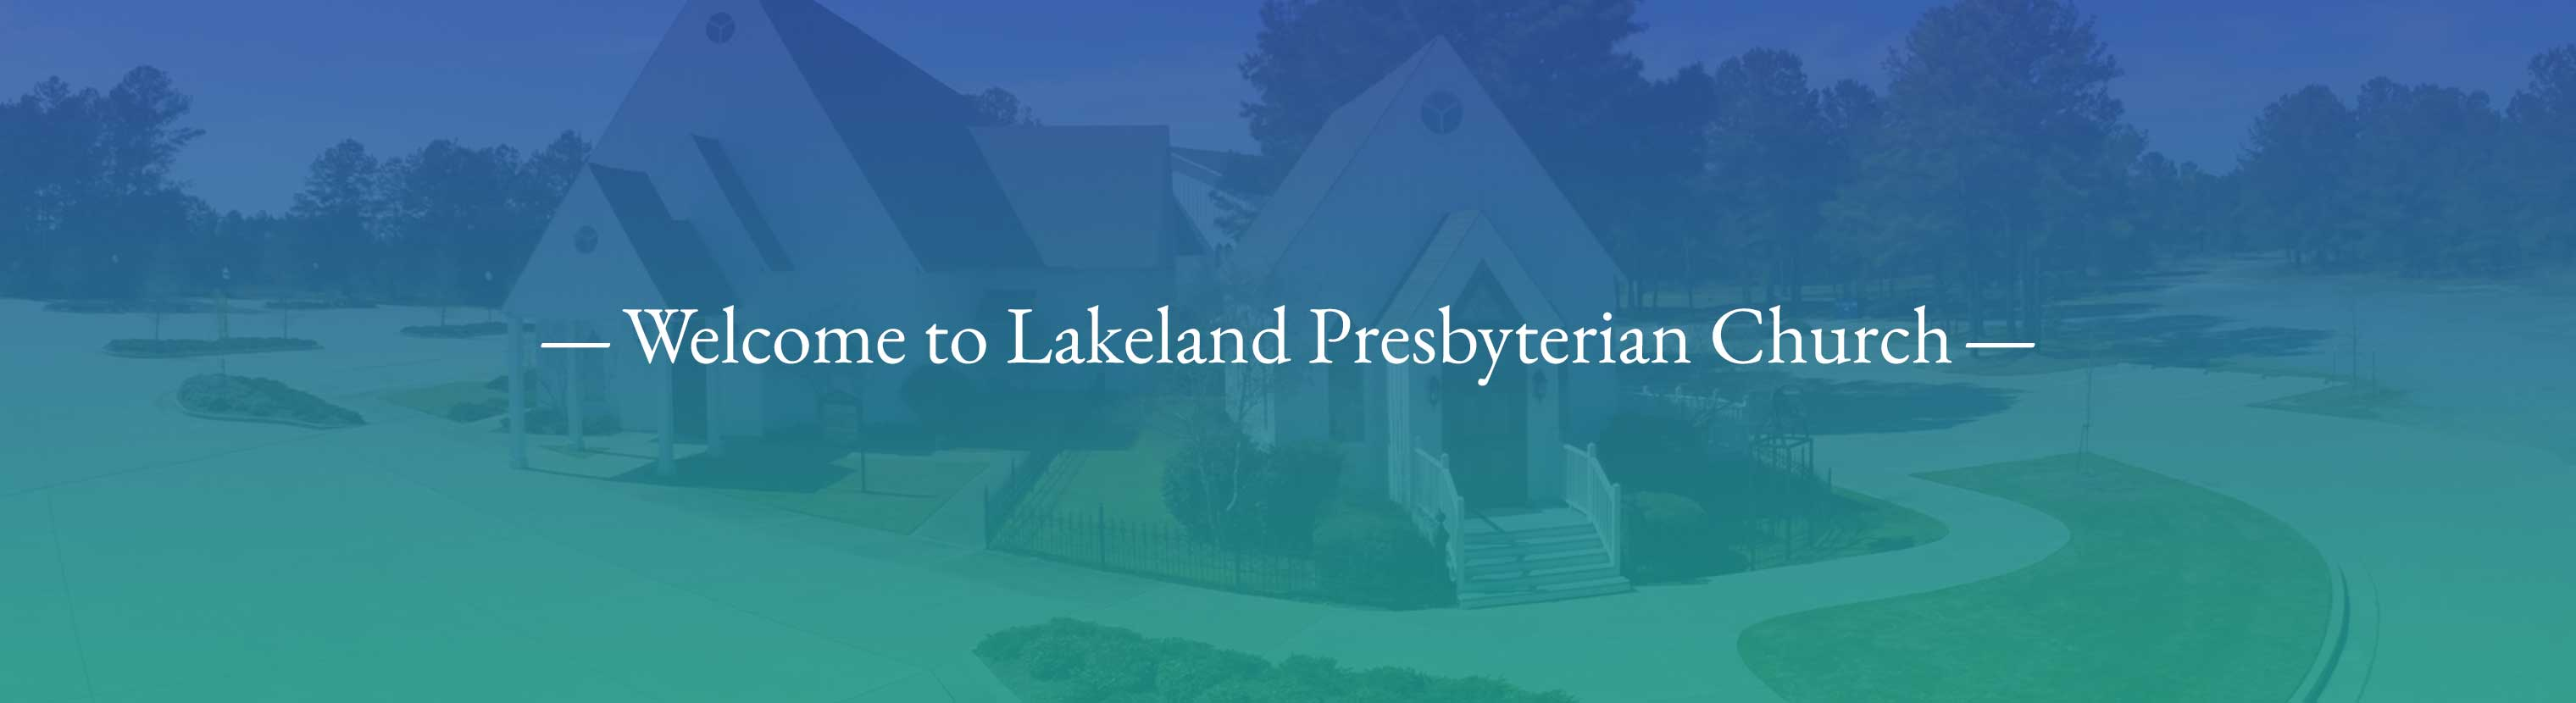 Welcome to Lakeland Presbyterian Church